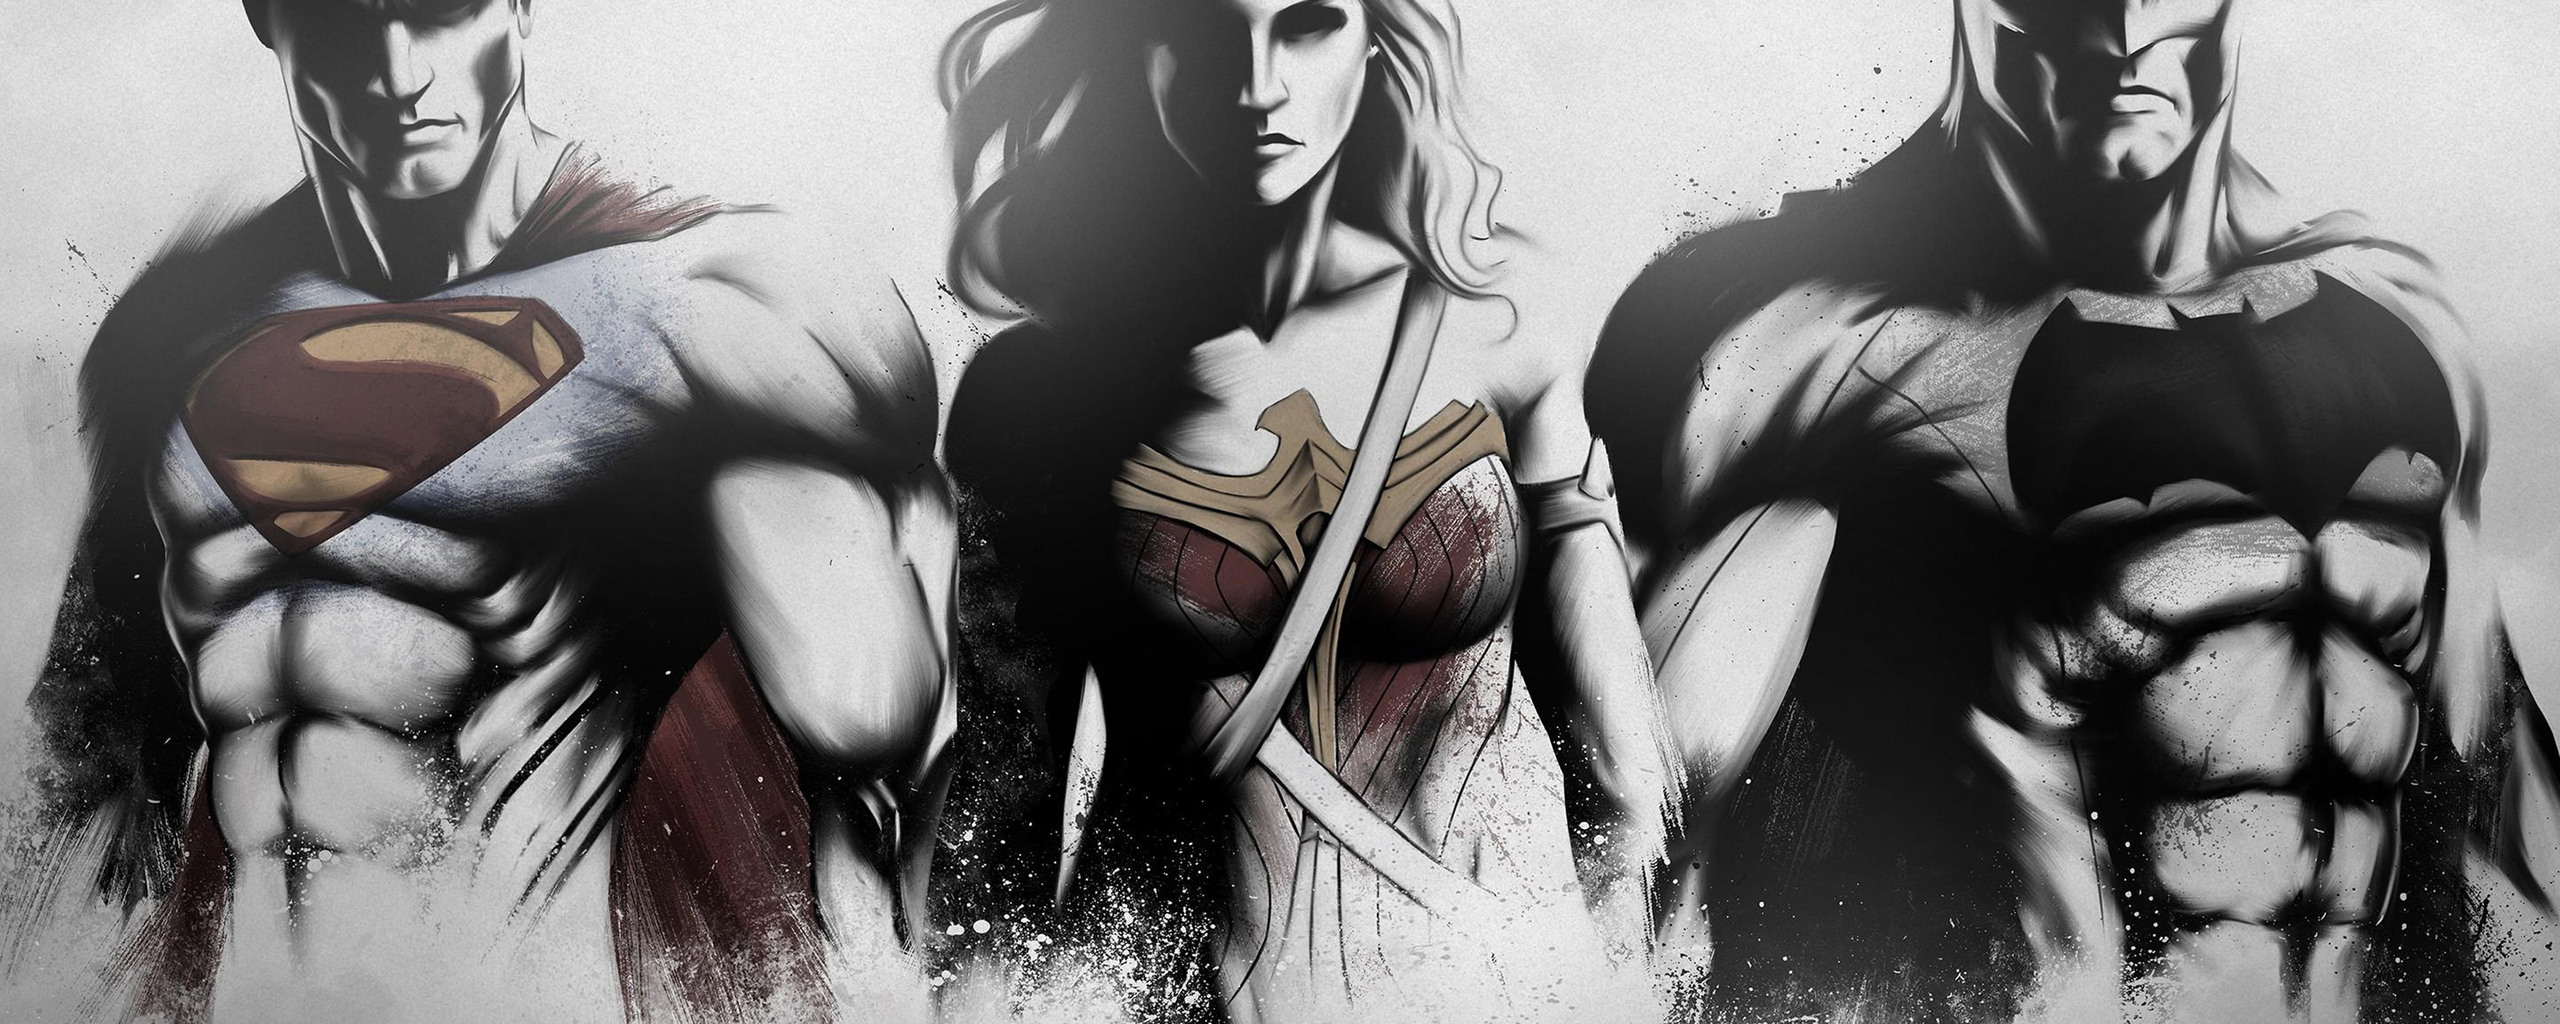 superman-wonder-woman-batman-art-sketch-4k-5t.jpg